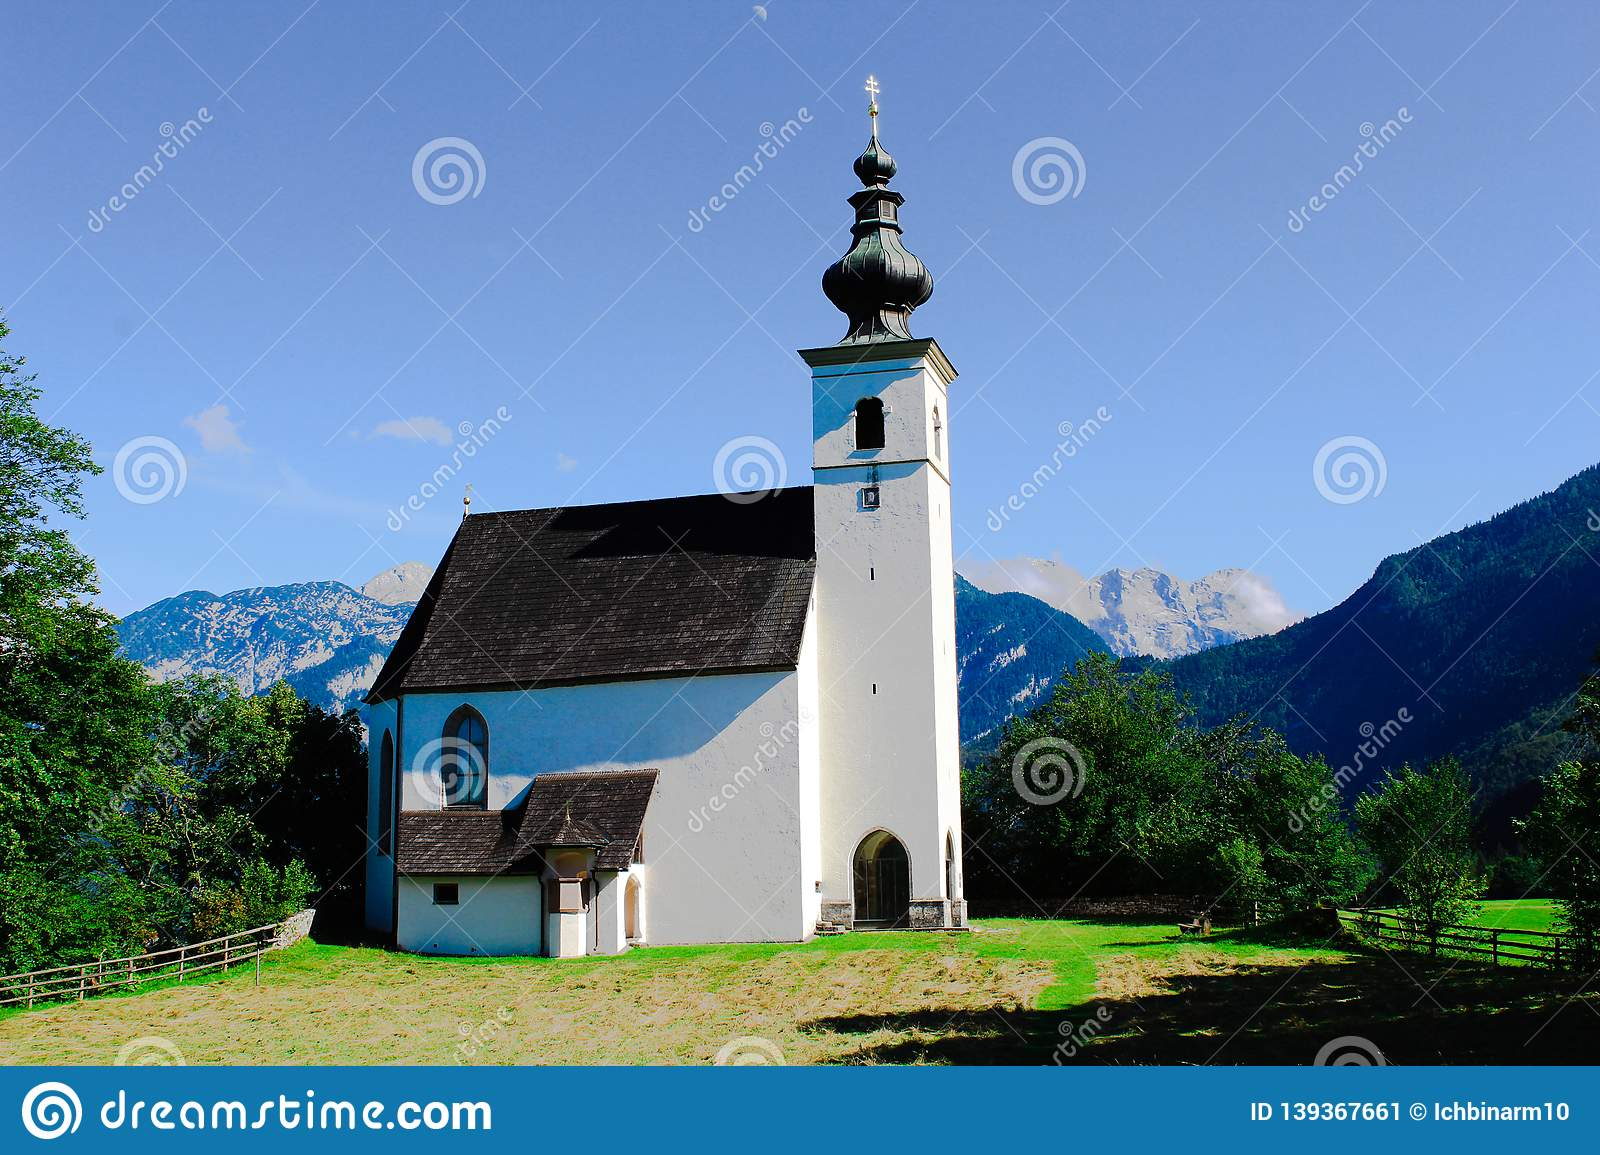 A church on a hill in front of the Alps